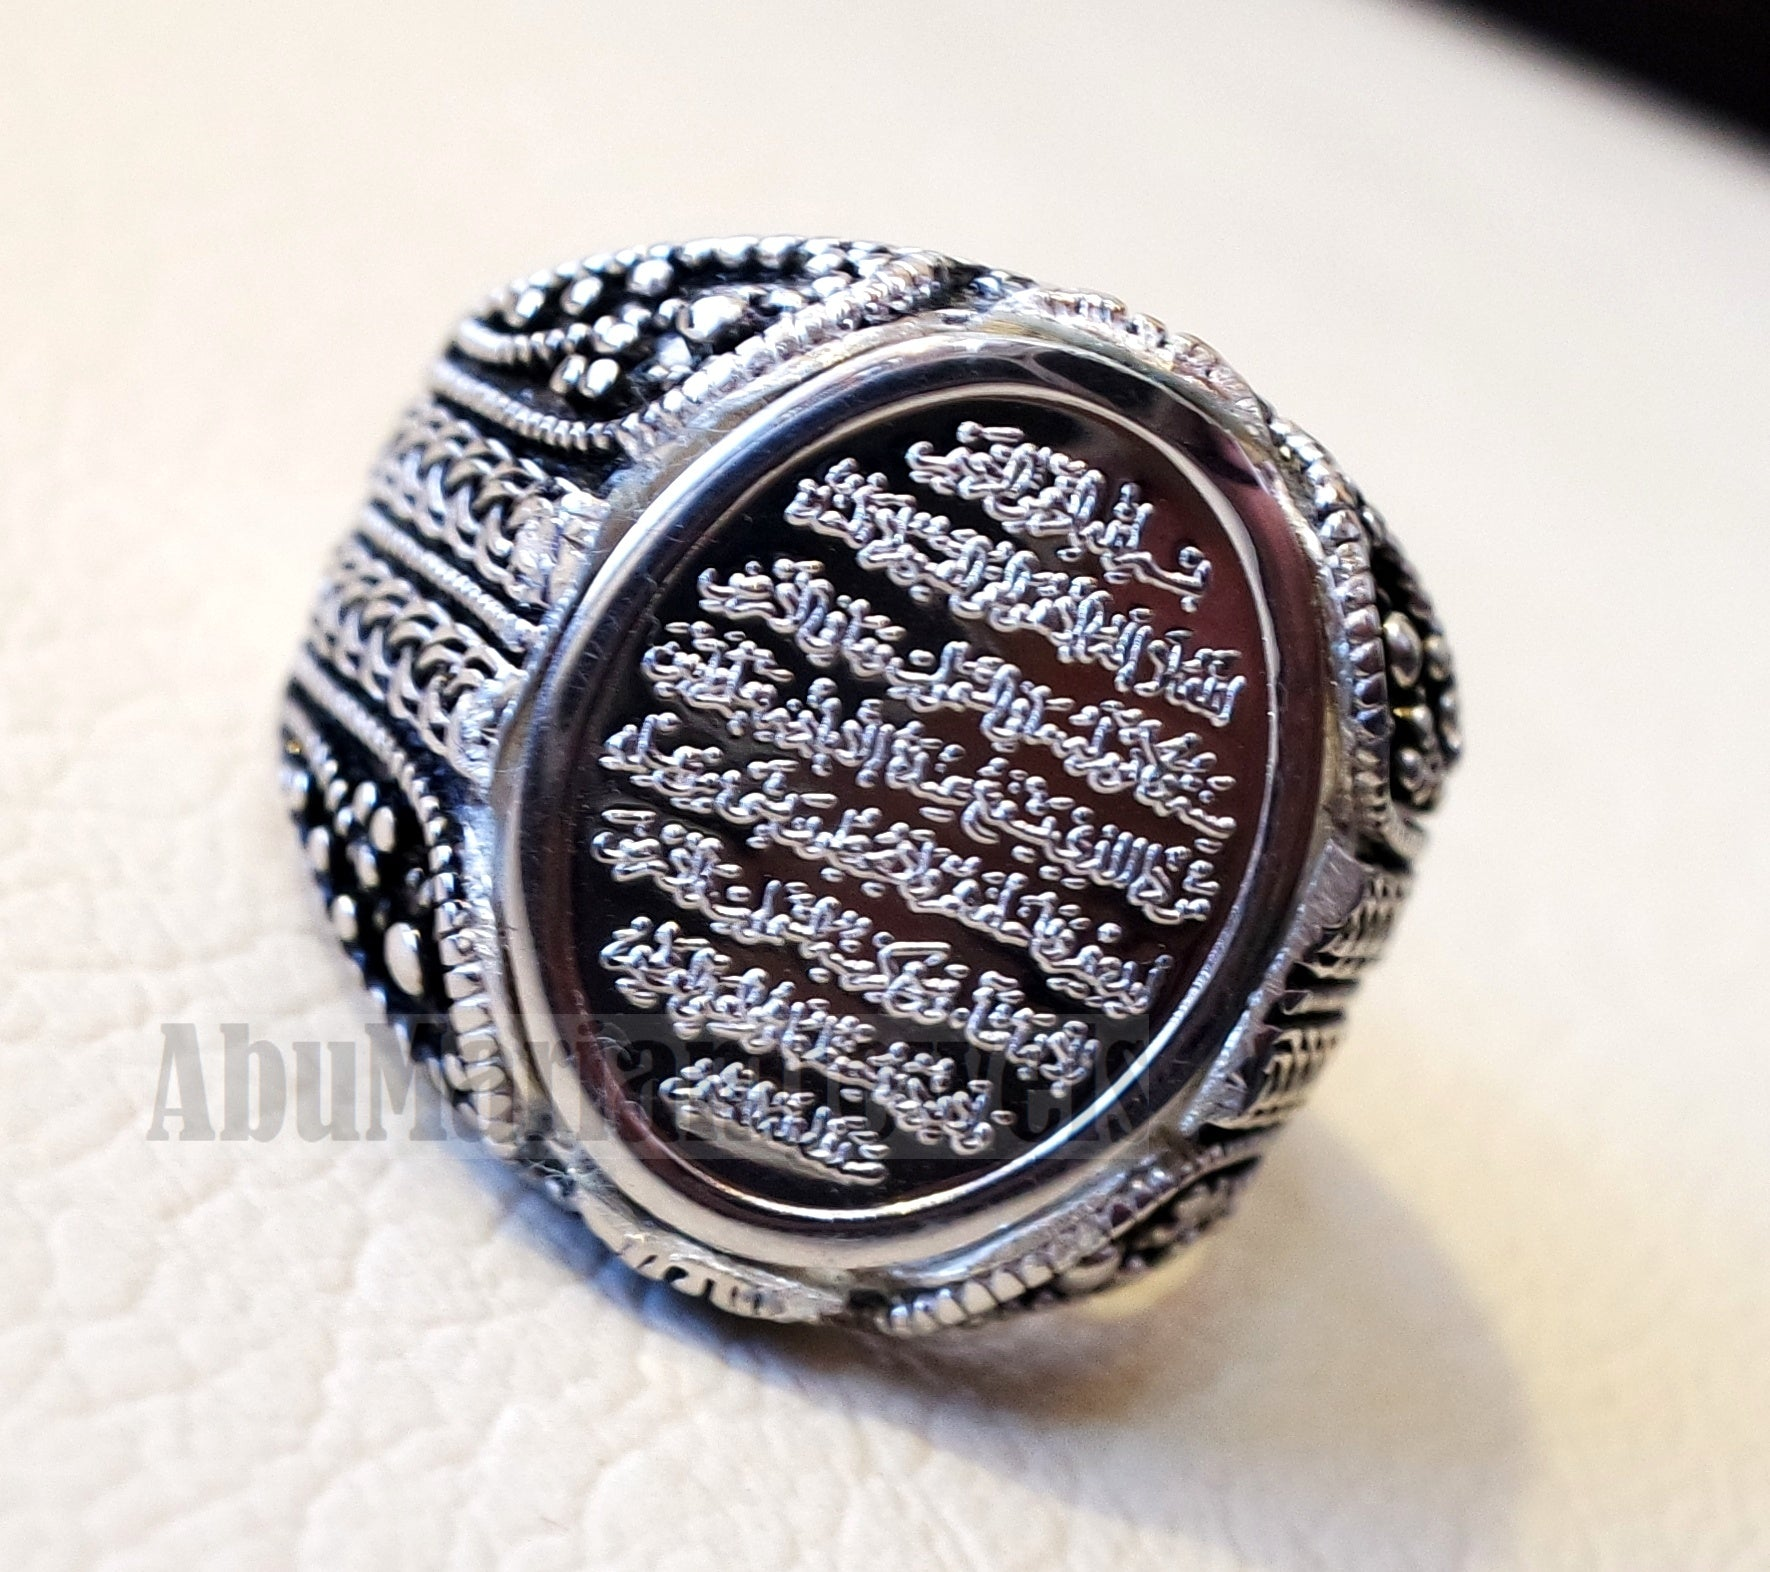 men ring Ayet Kursi Arabic islamic quraan verses sterling silver 925 any size jewelry heavy man gift خاتم أية كرسي